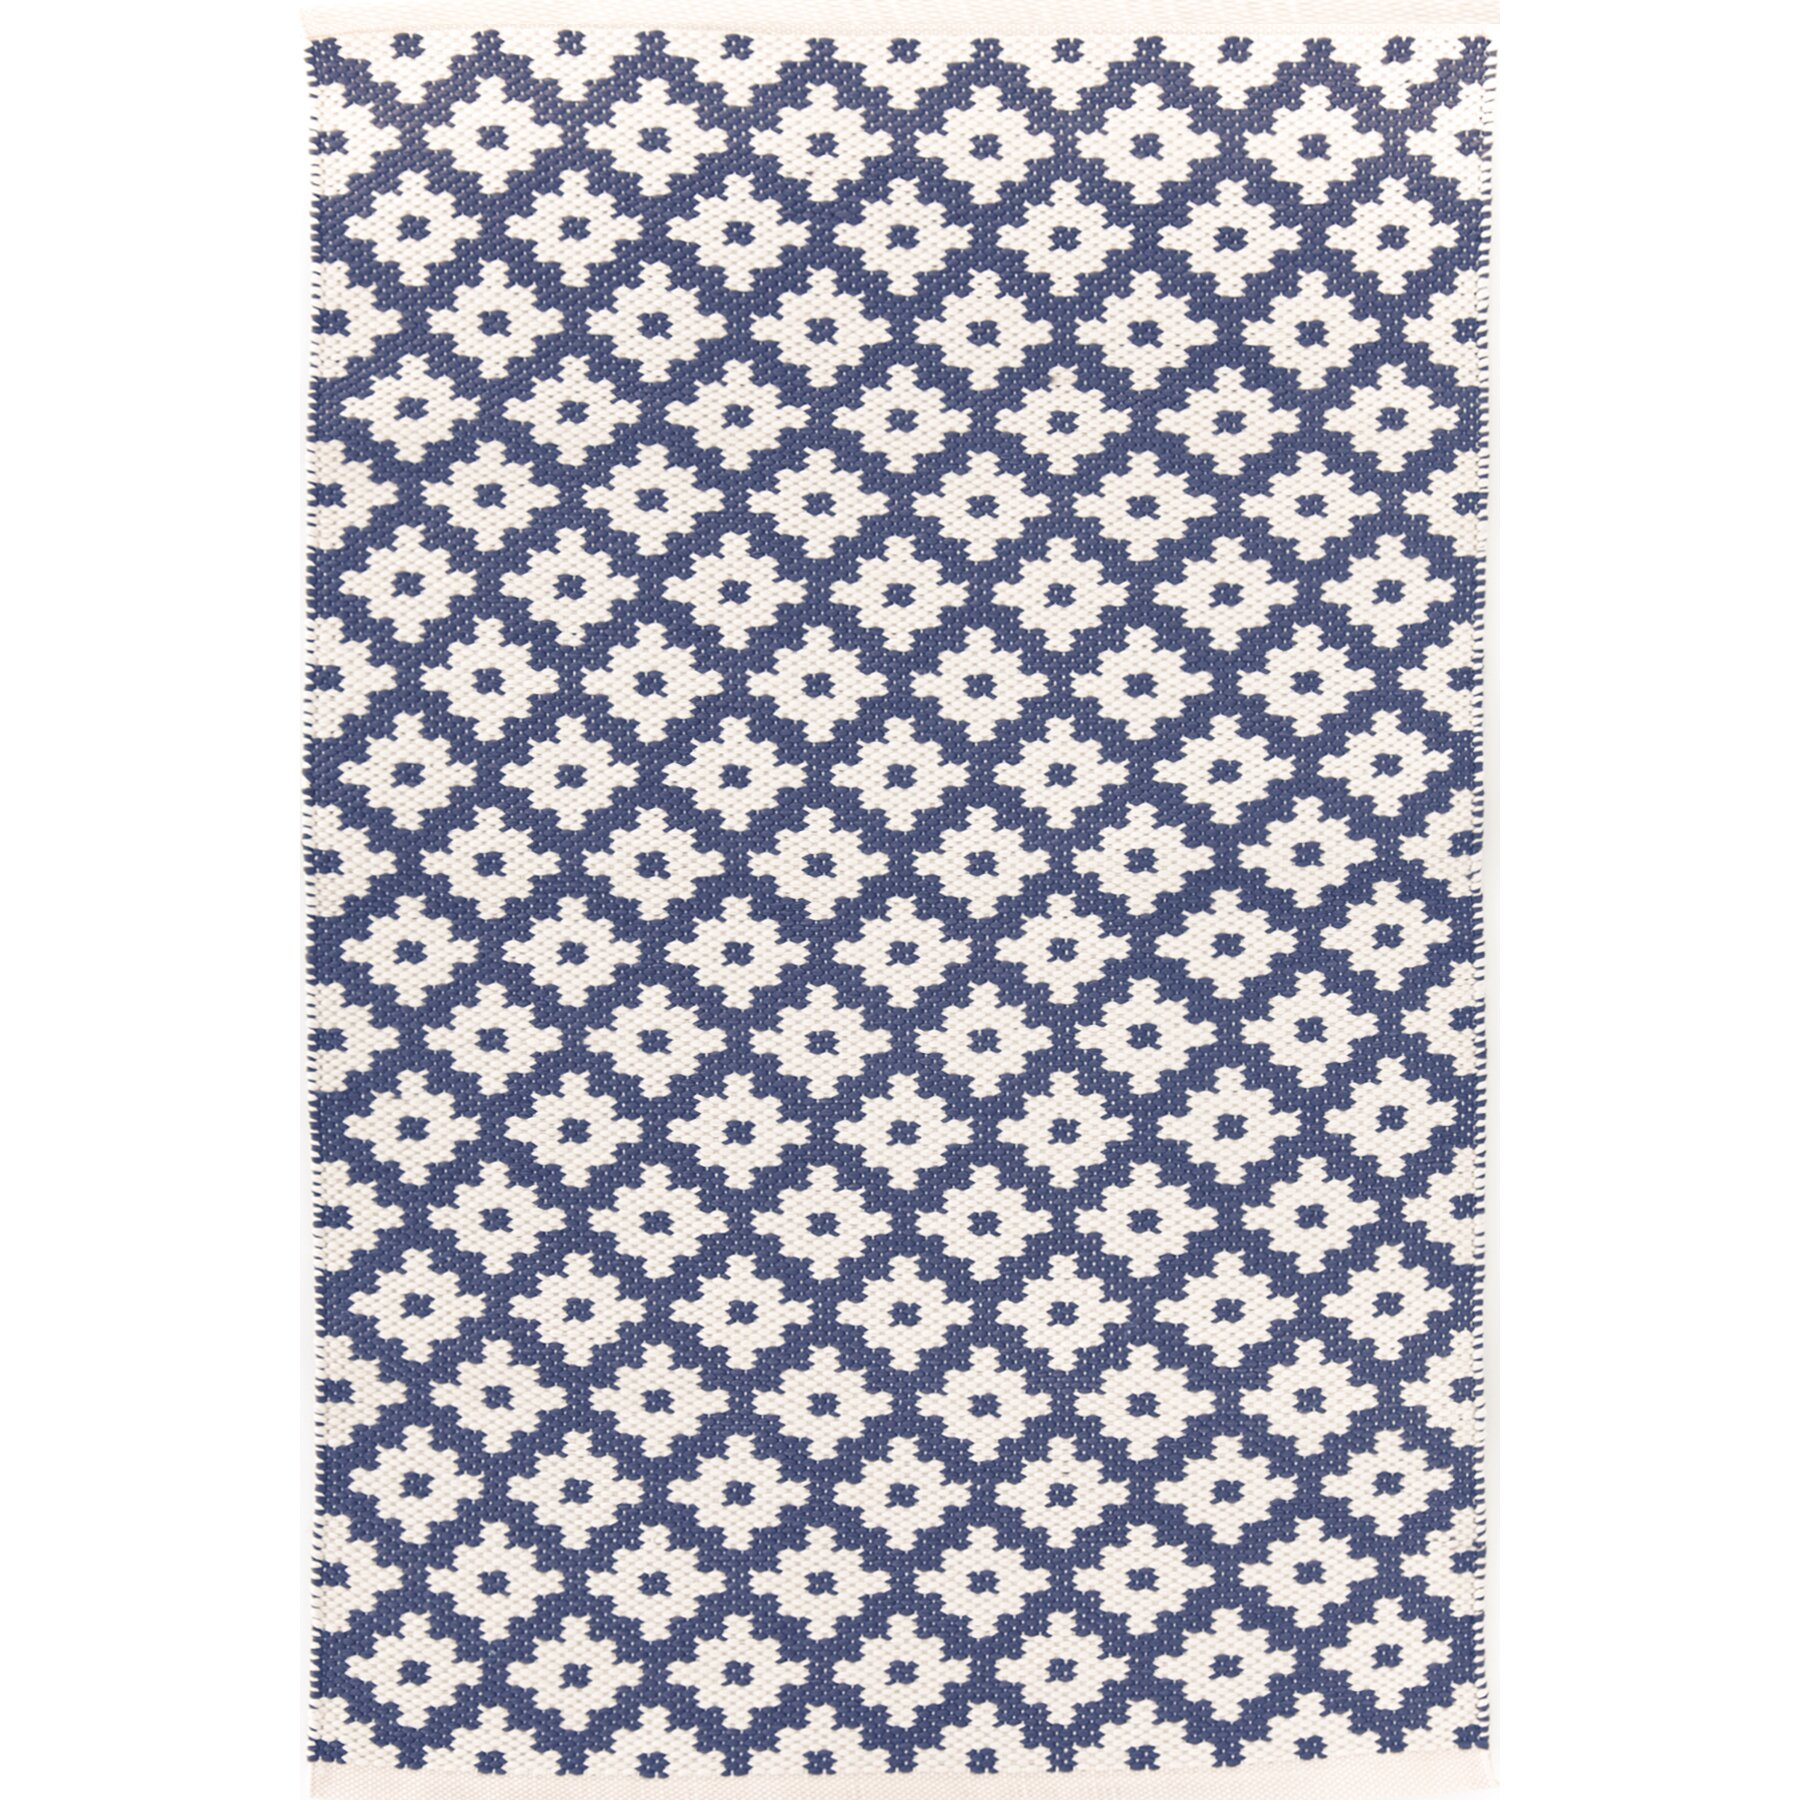 Dash and albert rugs samode hand woven blue indoor outdoor for Dash and albert indoor outdoor rugs